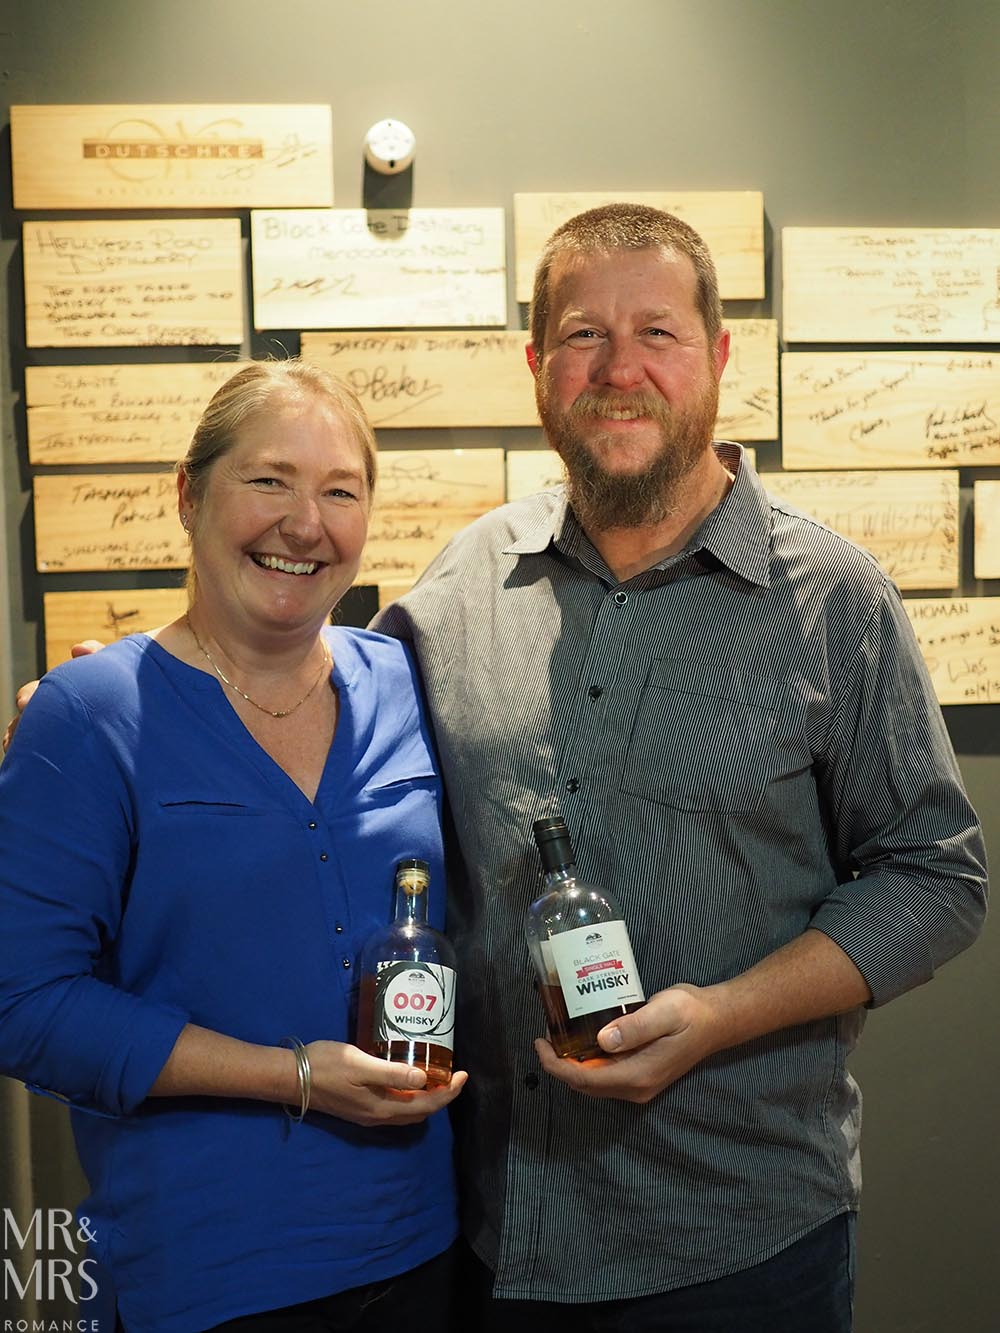 Australian whiskies - Black Gate - Mr & Mrs Romance